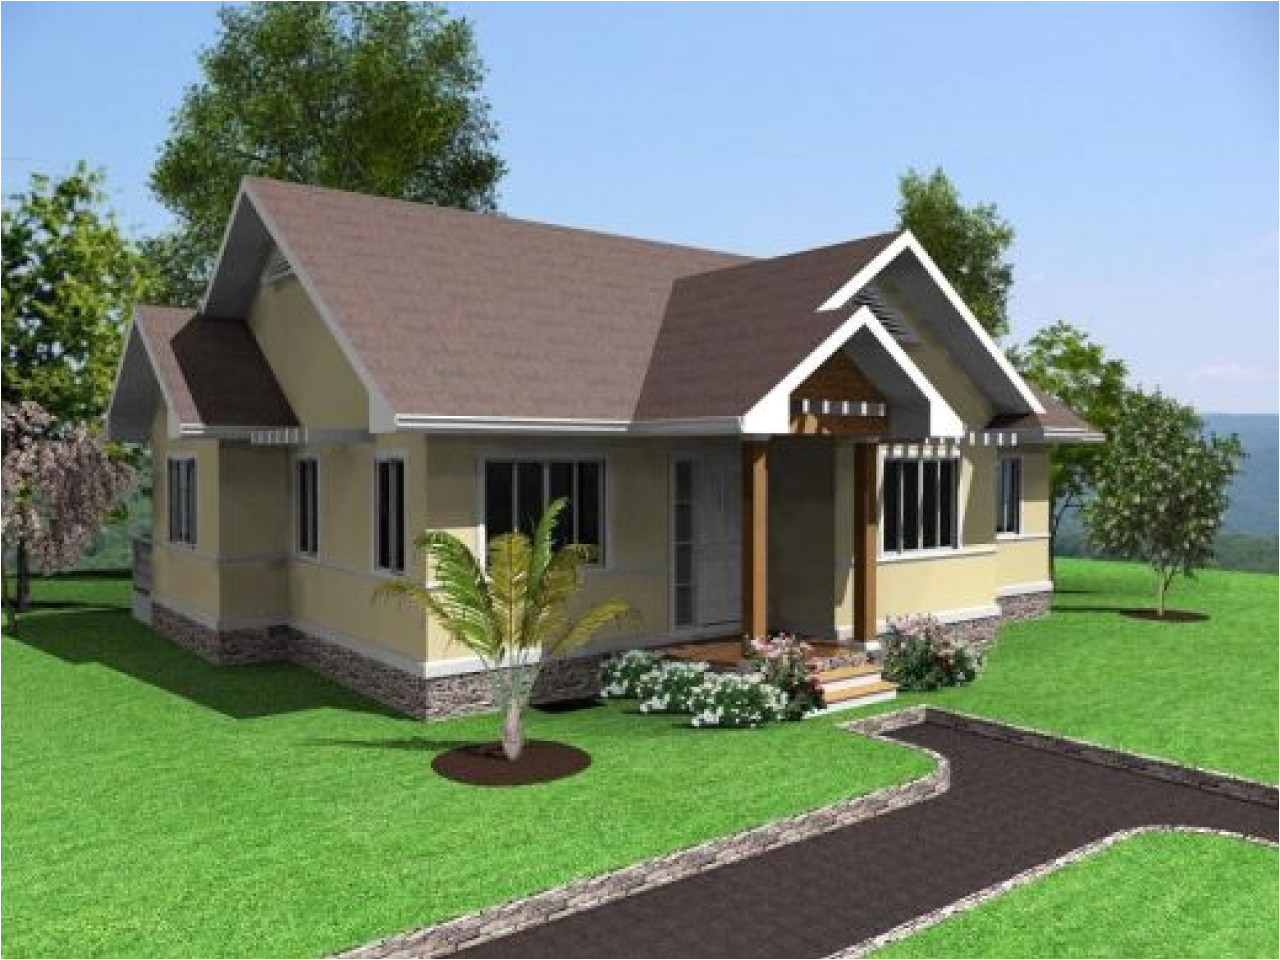 feba325f9631fd46 simple house design 3 bedrooms in the philippines simple modern house designs